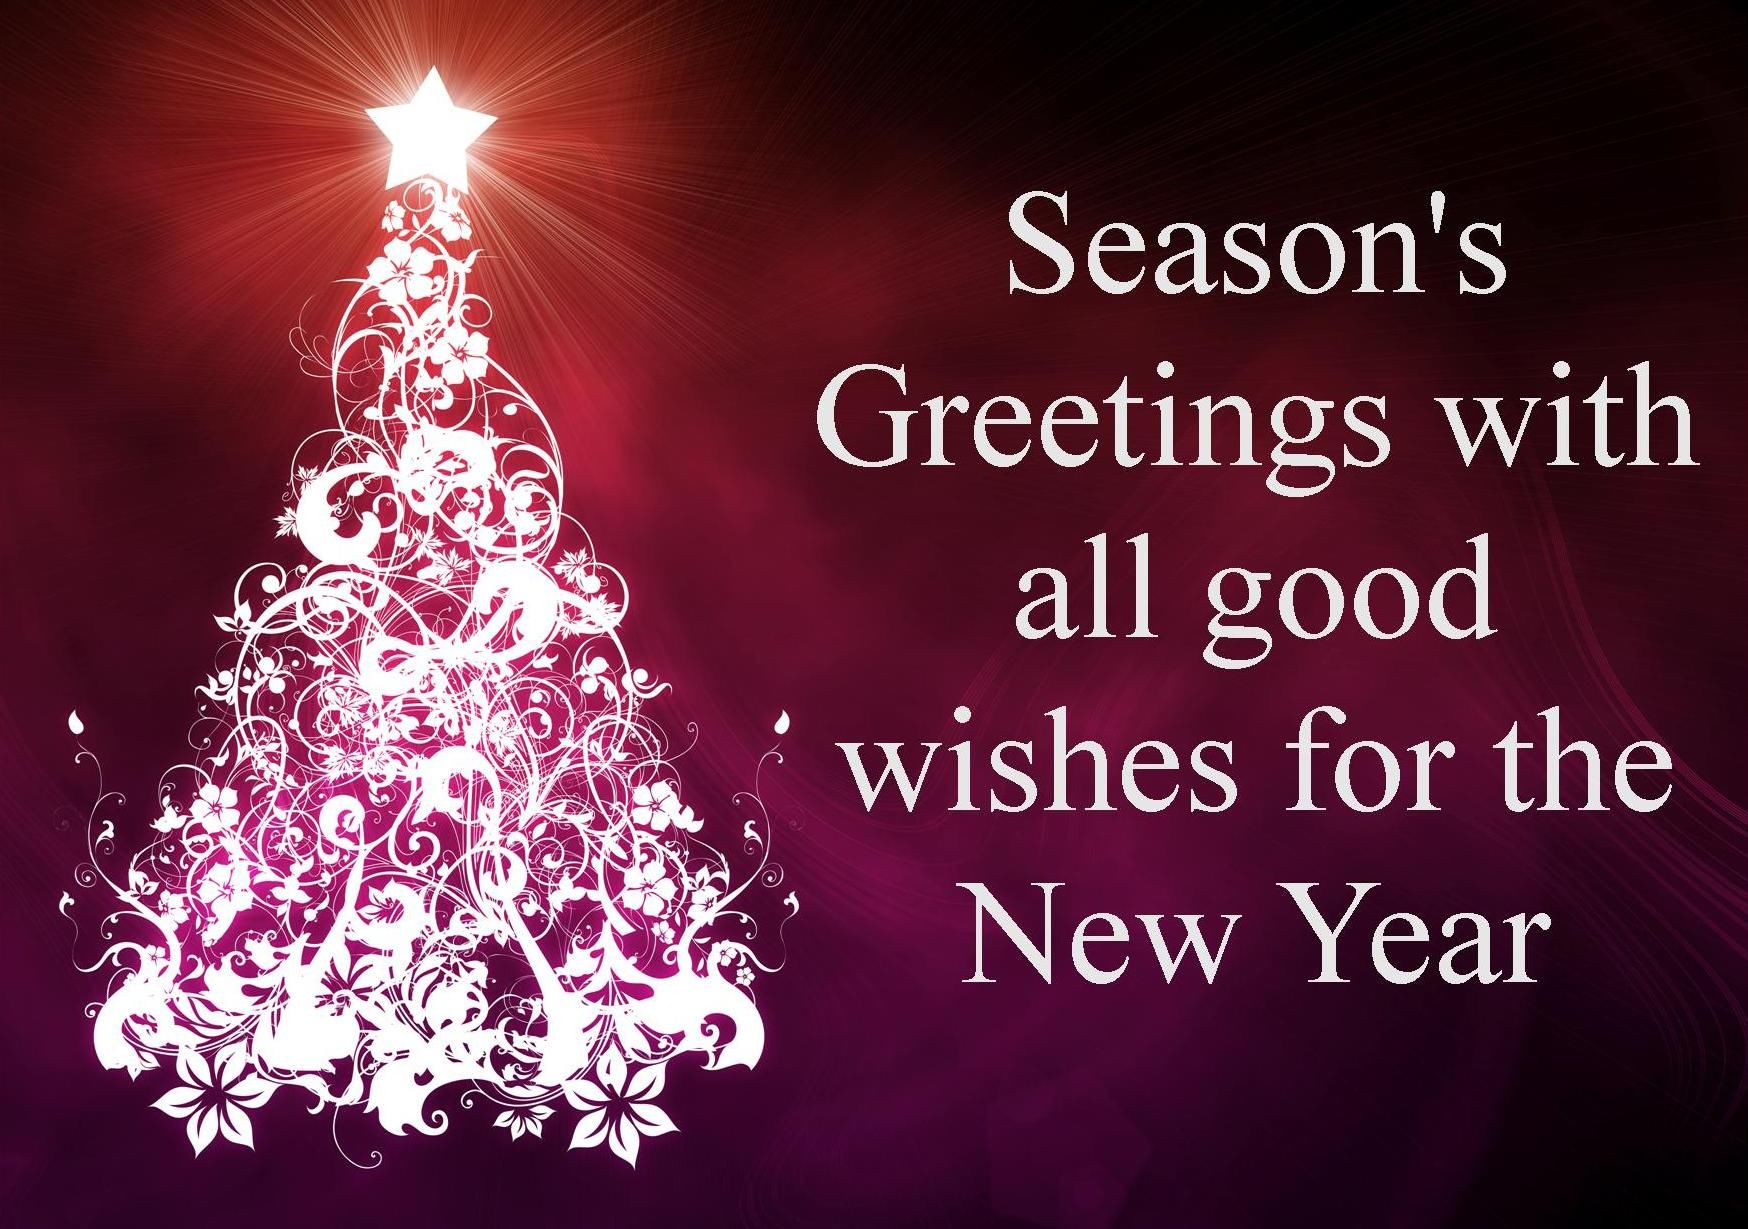 season s greetings with all good wishes for the new year pictures